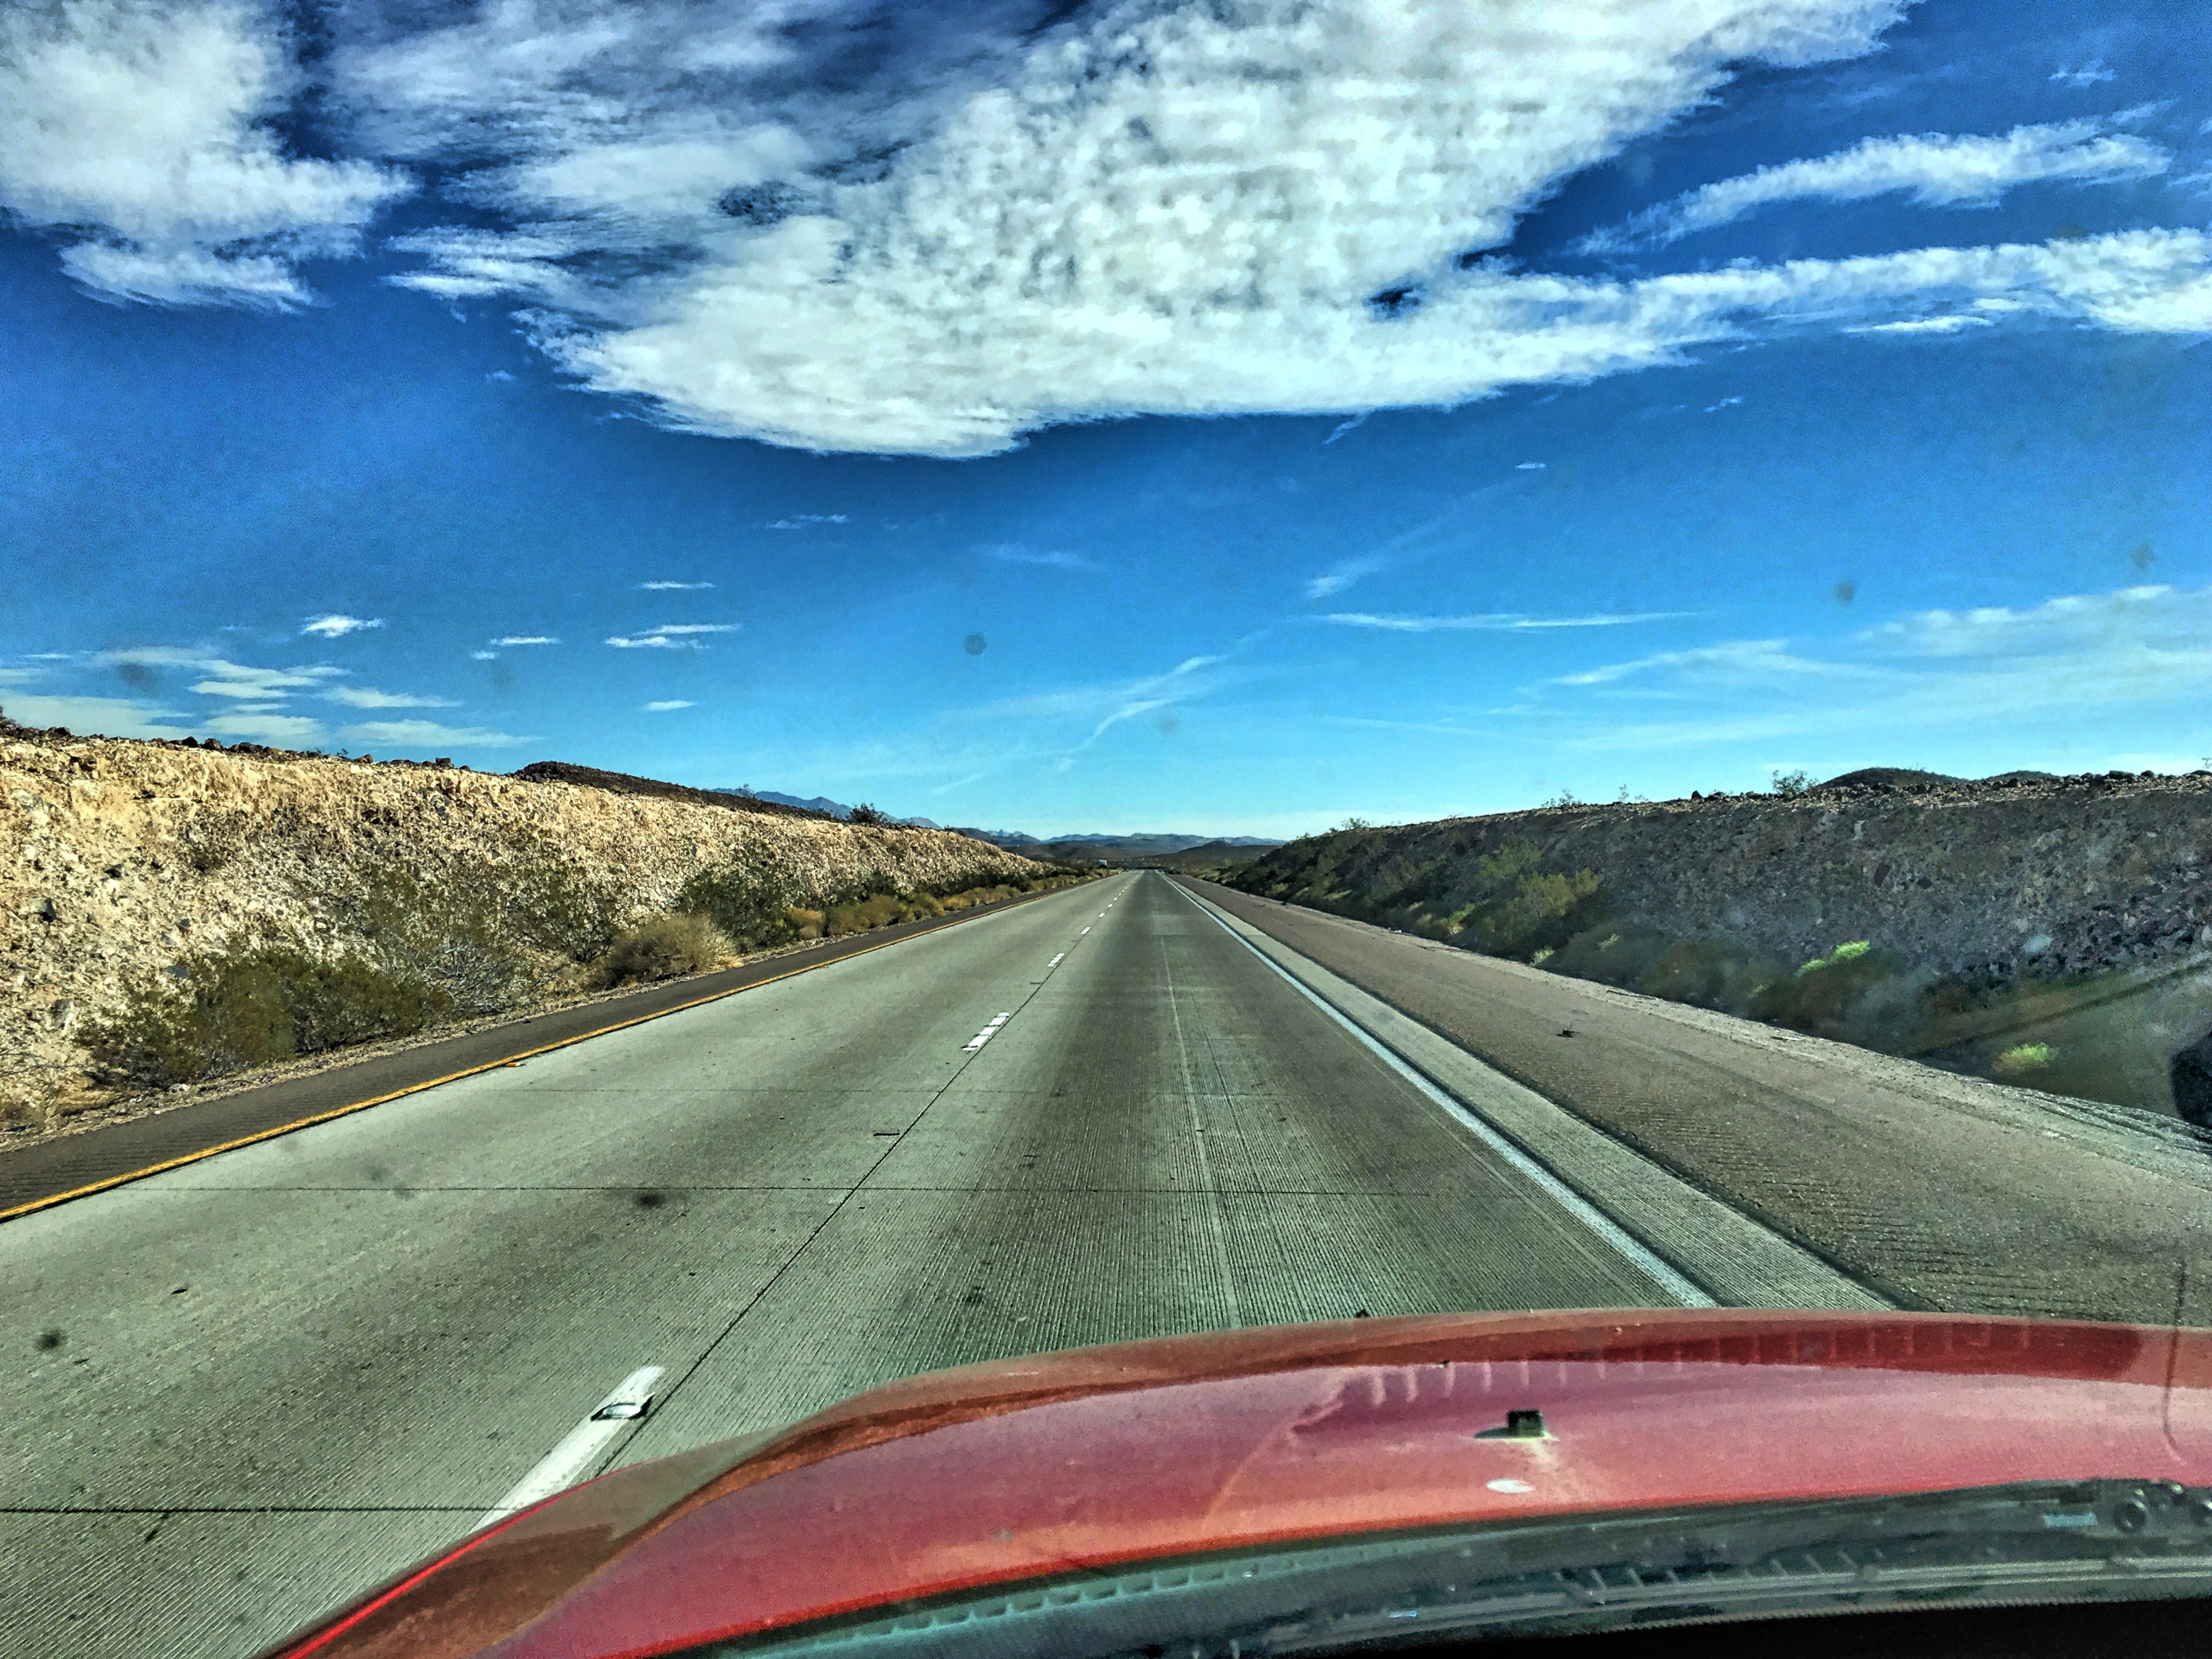 On the Wide Open Highway, Driving, Grass, Highway, Landscape, HQ Photo